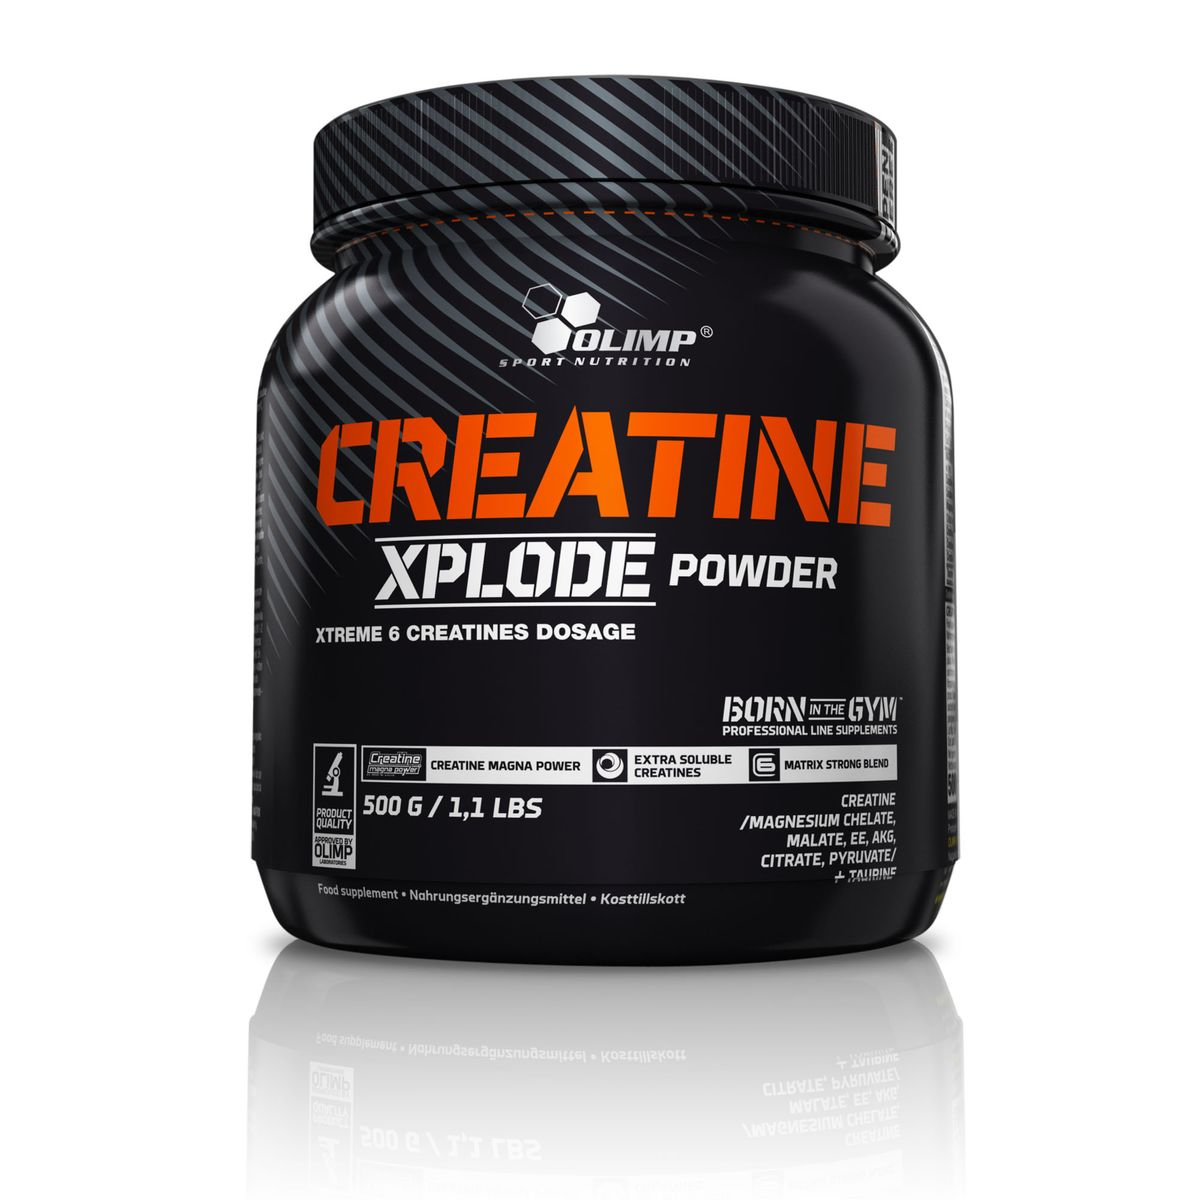 Креатин Olimp Sport Nutrition Xplode Powder, ананас, 500 г креатин olimp creatine xplode ананас 500 г